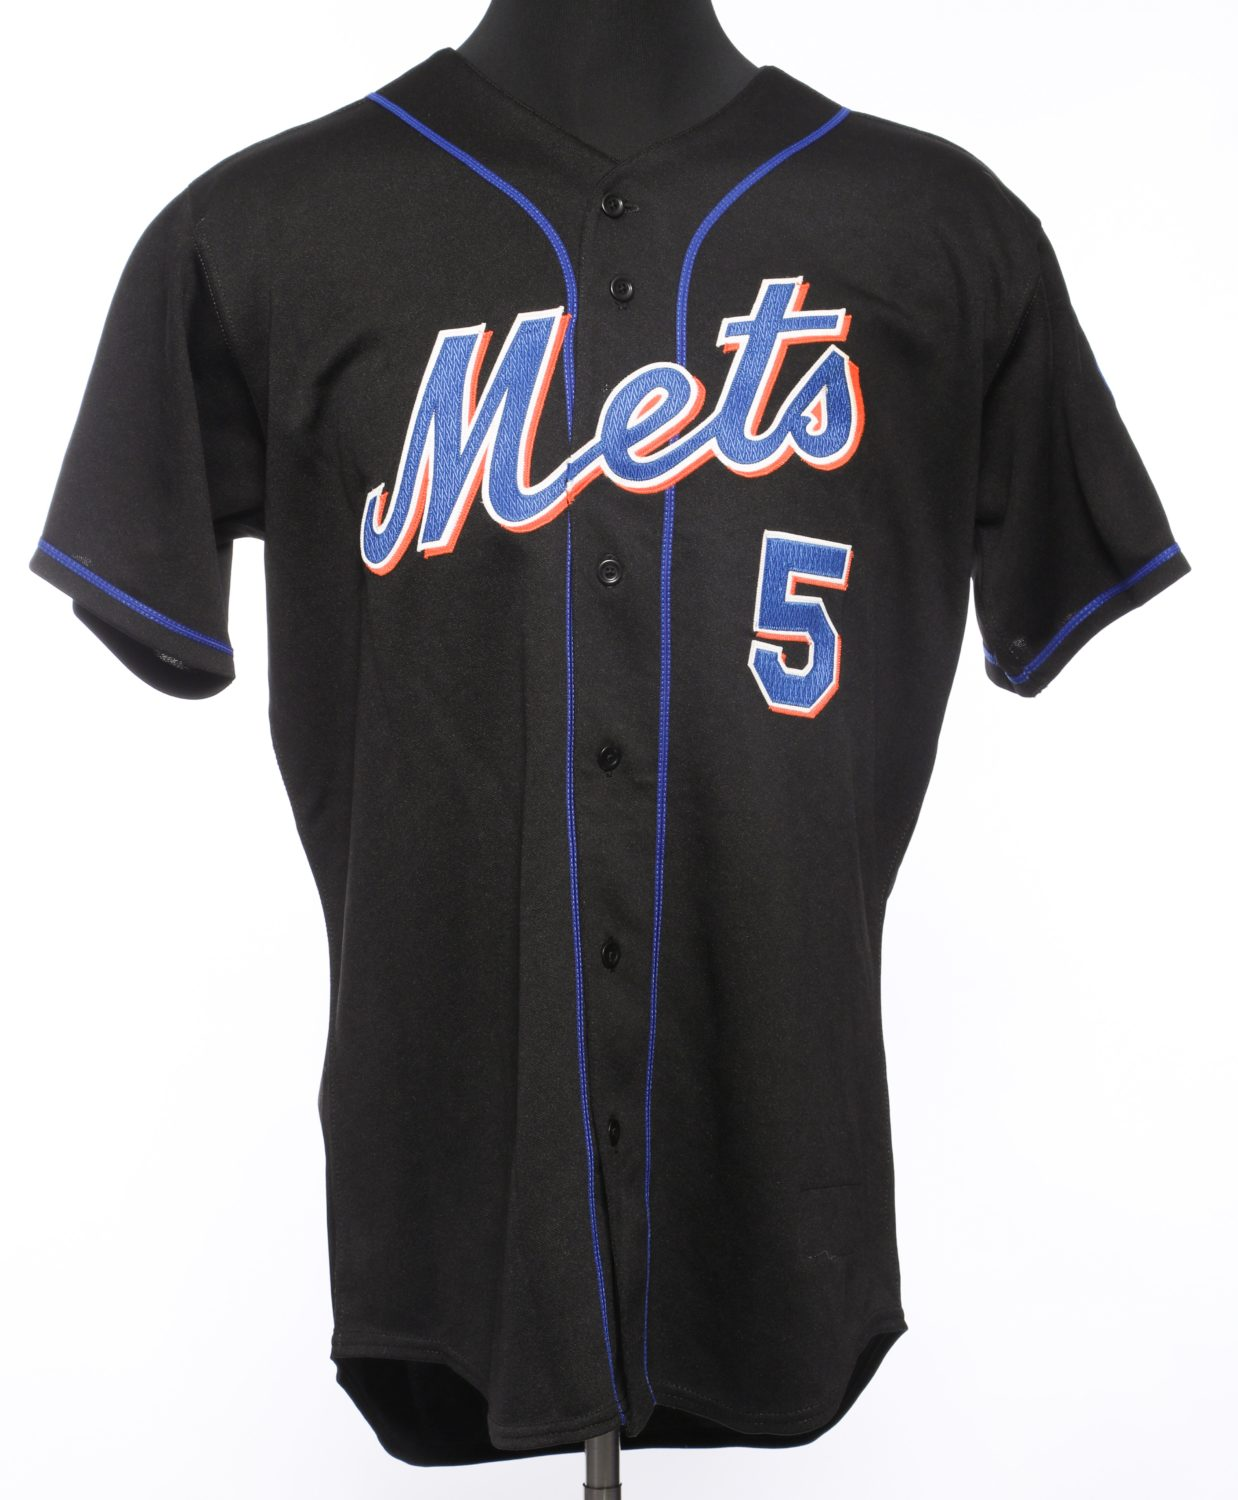 David Wright Autographed Black Mets Jersey - Front